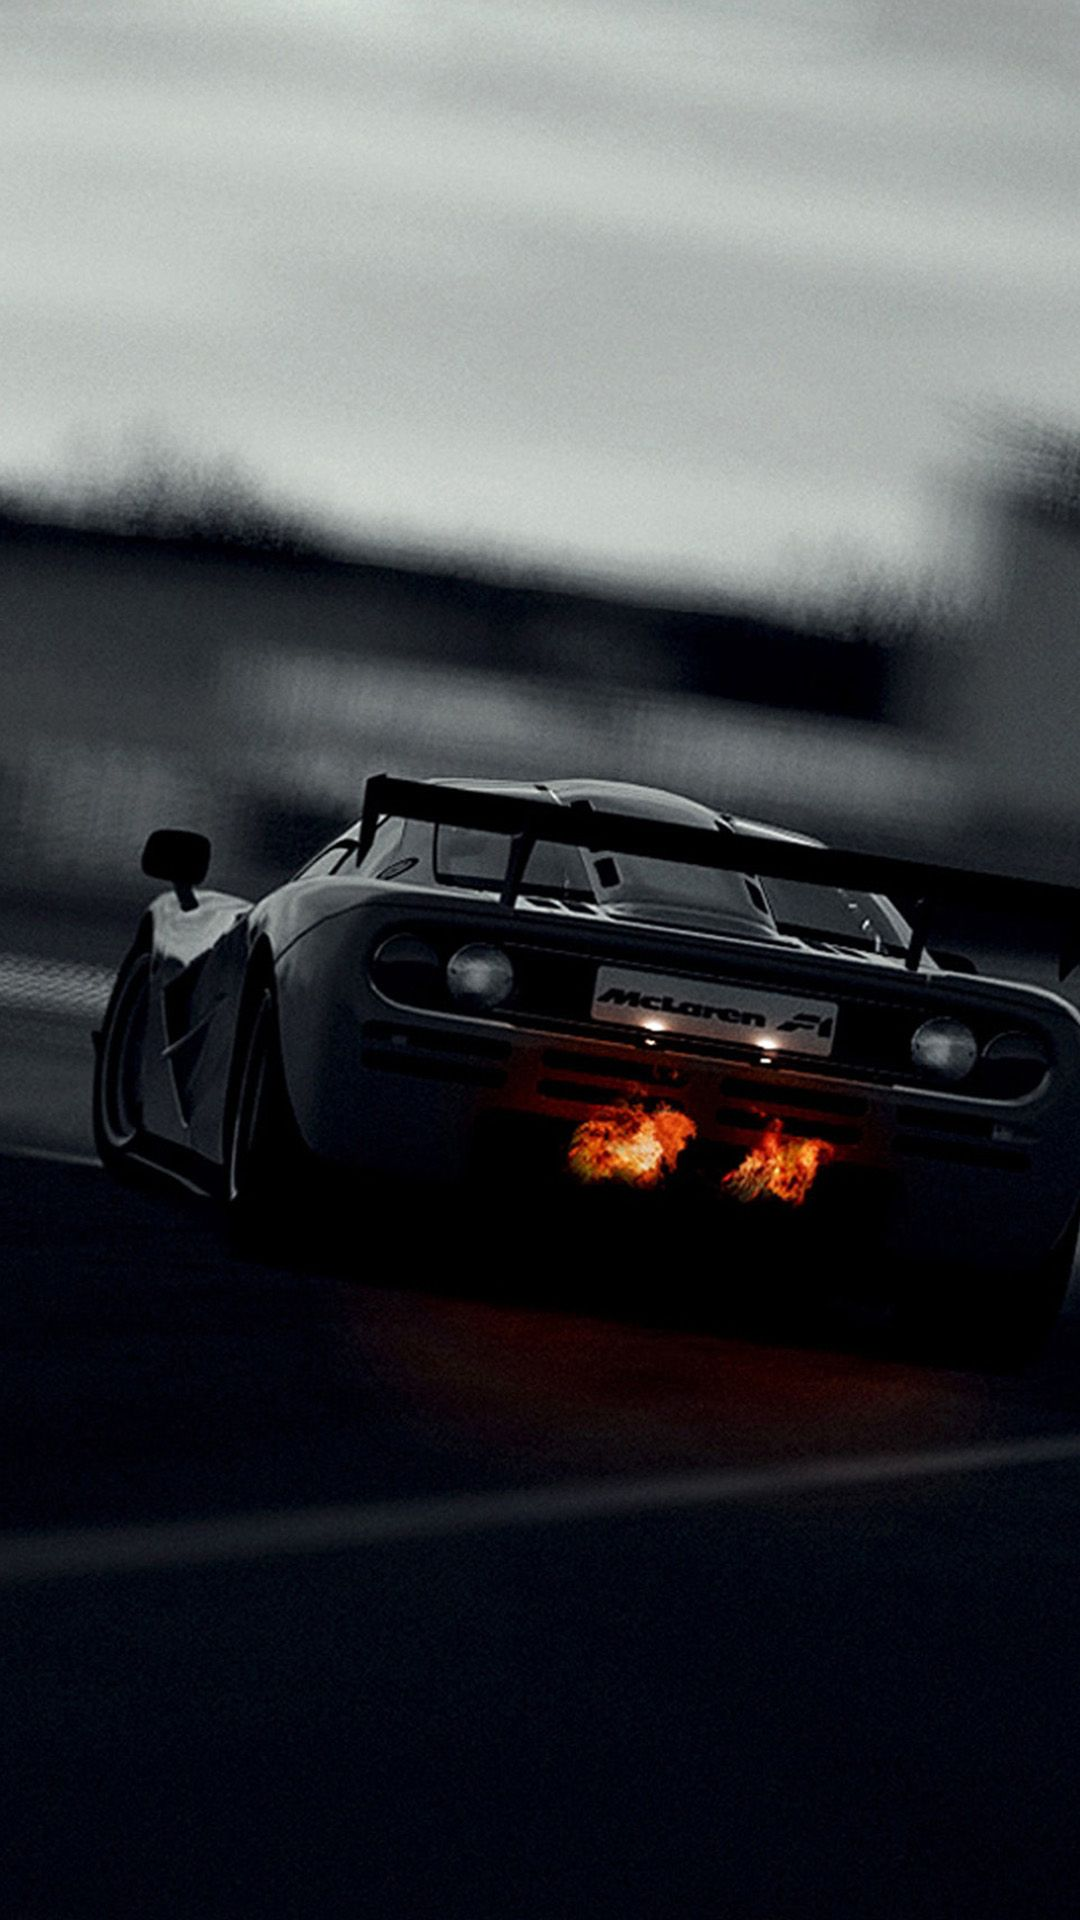 Mclaren F1 And A Splash Of Fire Hell Yeah I Like It